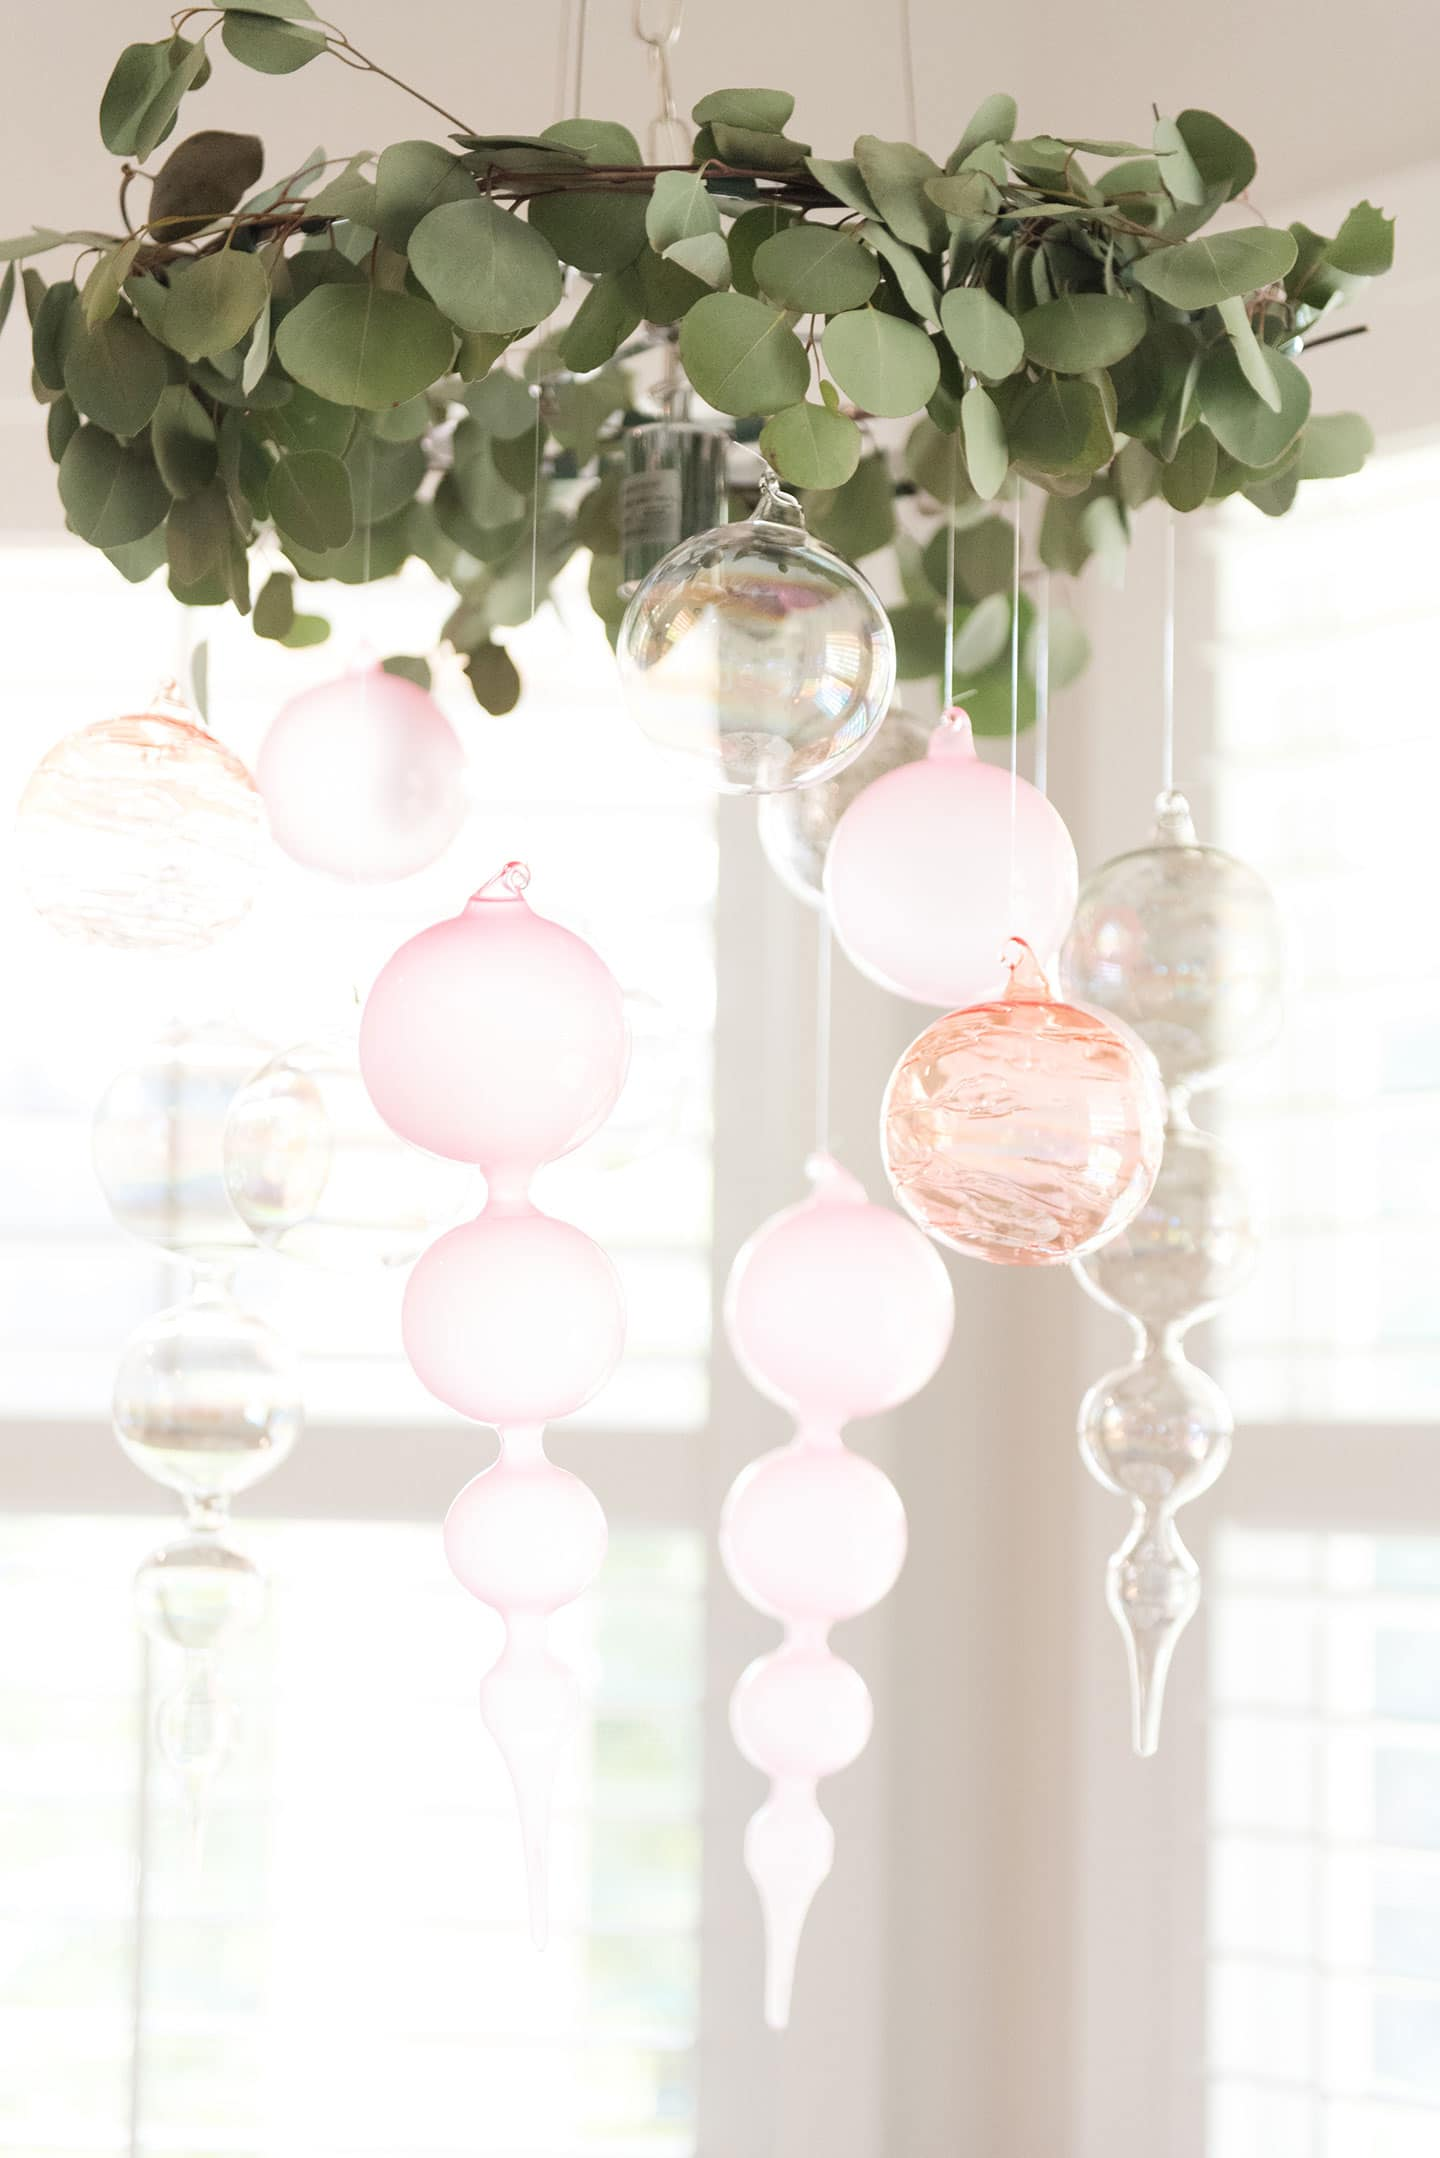 Hanging Ornaments from the Chandelier!